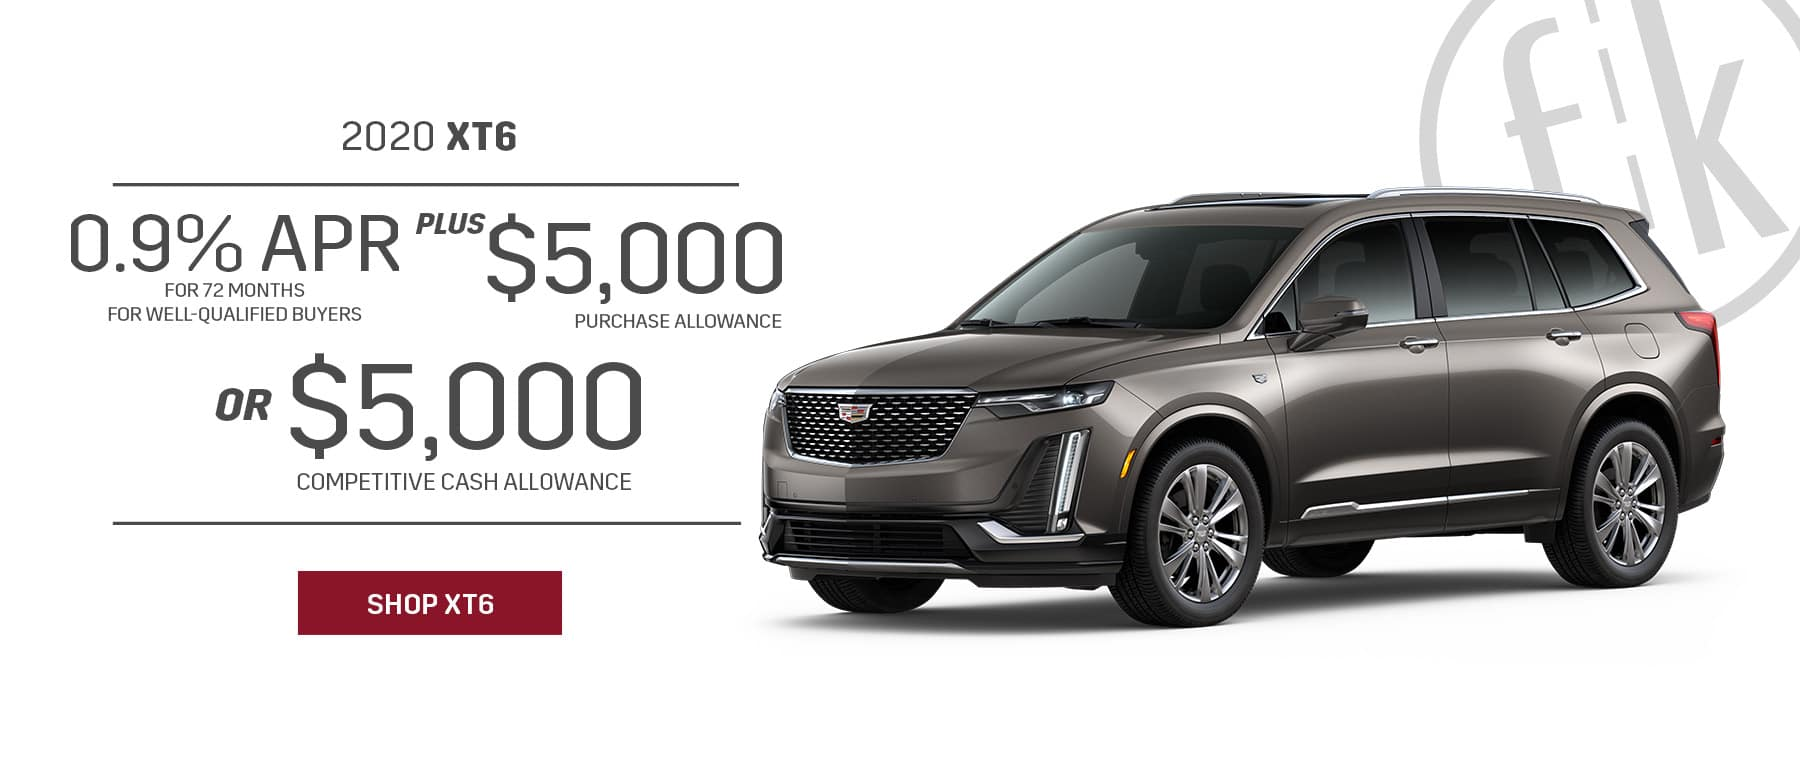 2020 XT6 0.9% for 72 mos. PLUS $5,000 Purchase Allowance OR $5,000 Competitive Cash Allowance